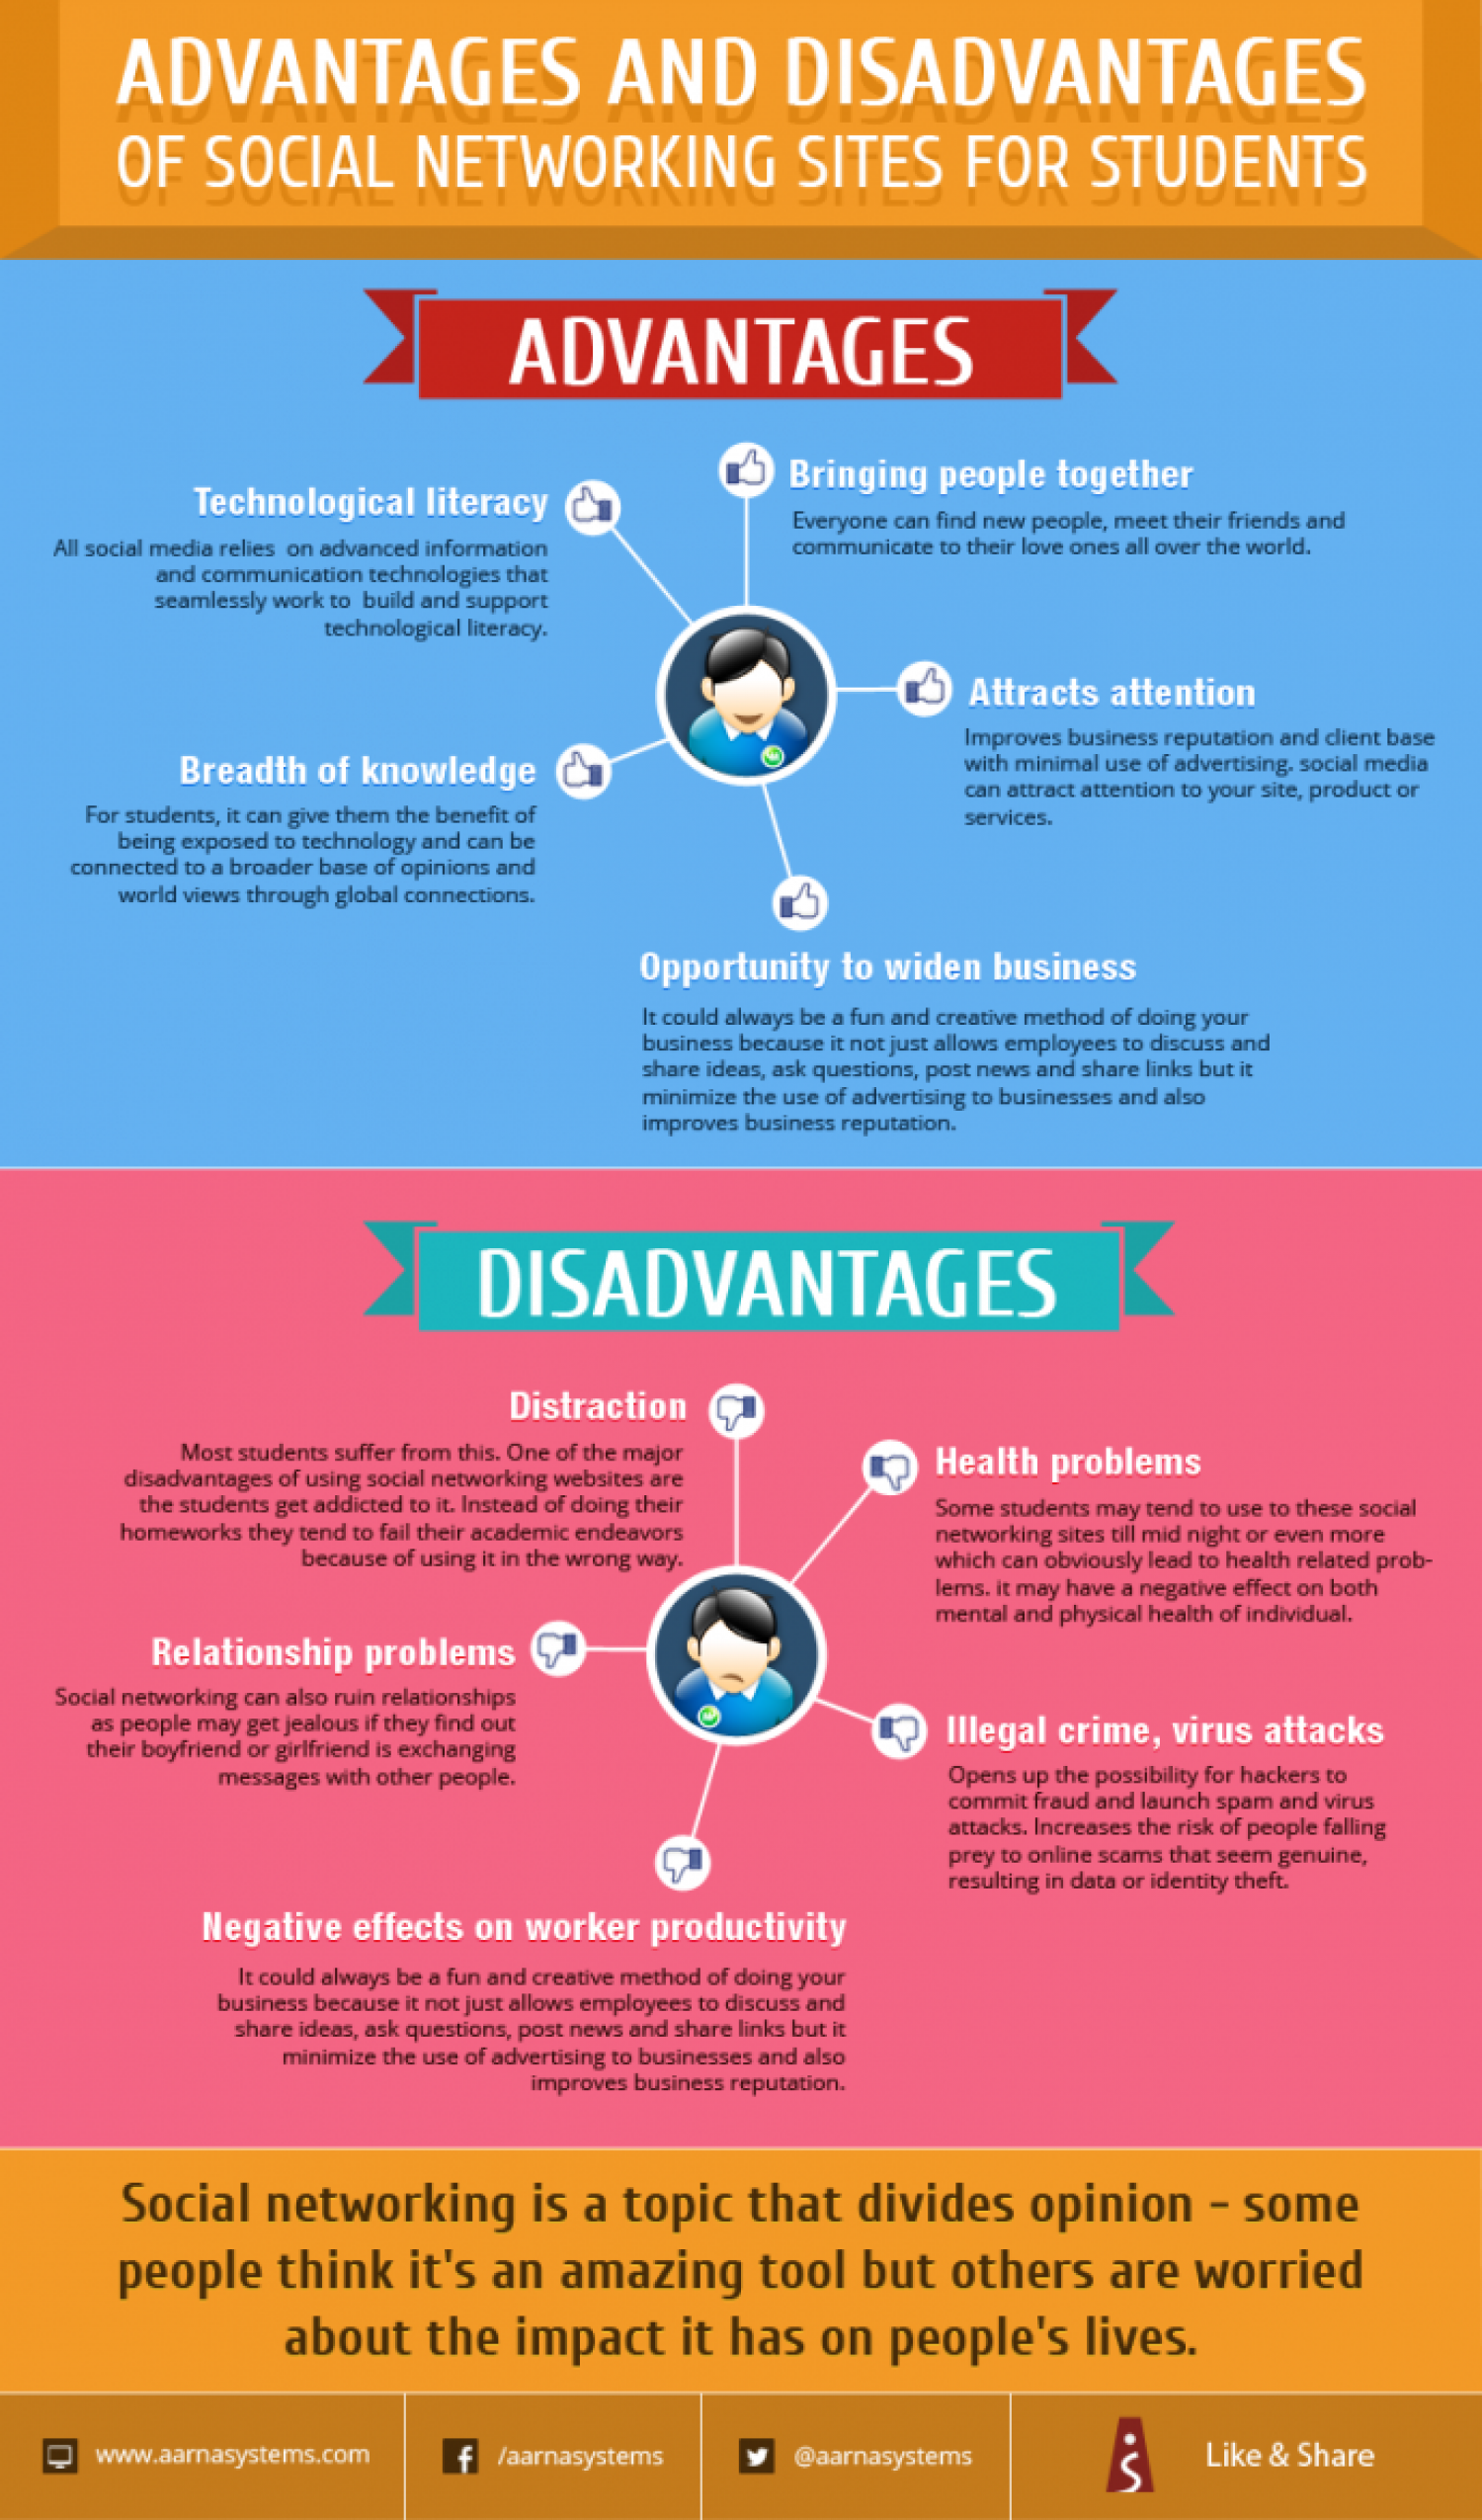 008 Pros And Cons Of Social Media Essay Pdf Example Advantages Disadvantages Networking Sites For Students 559a55cf7217e W1500id9757 Fantastic Full